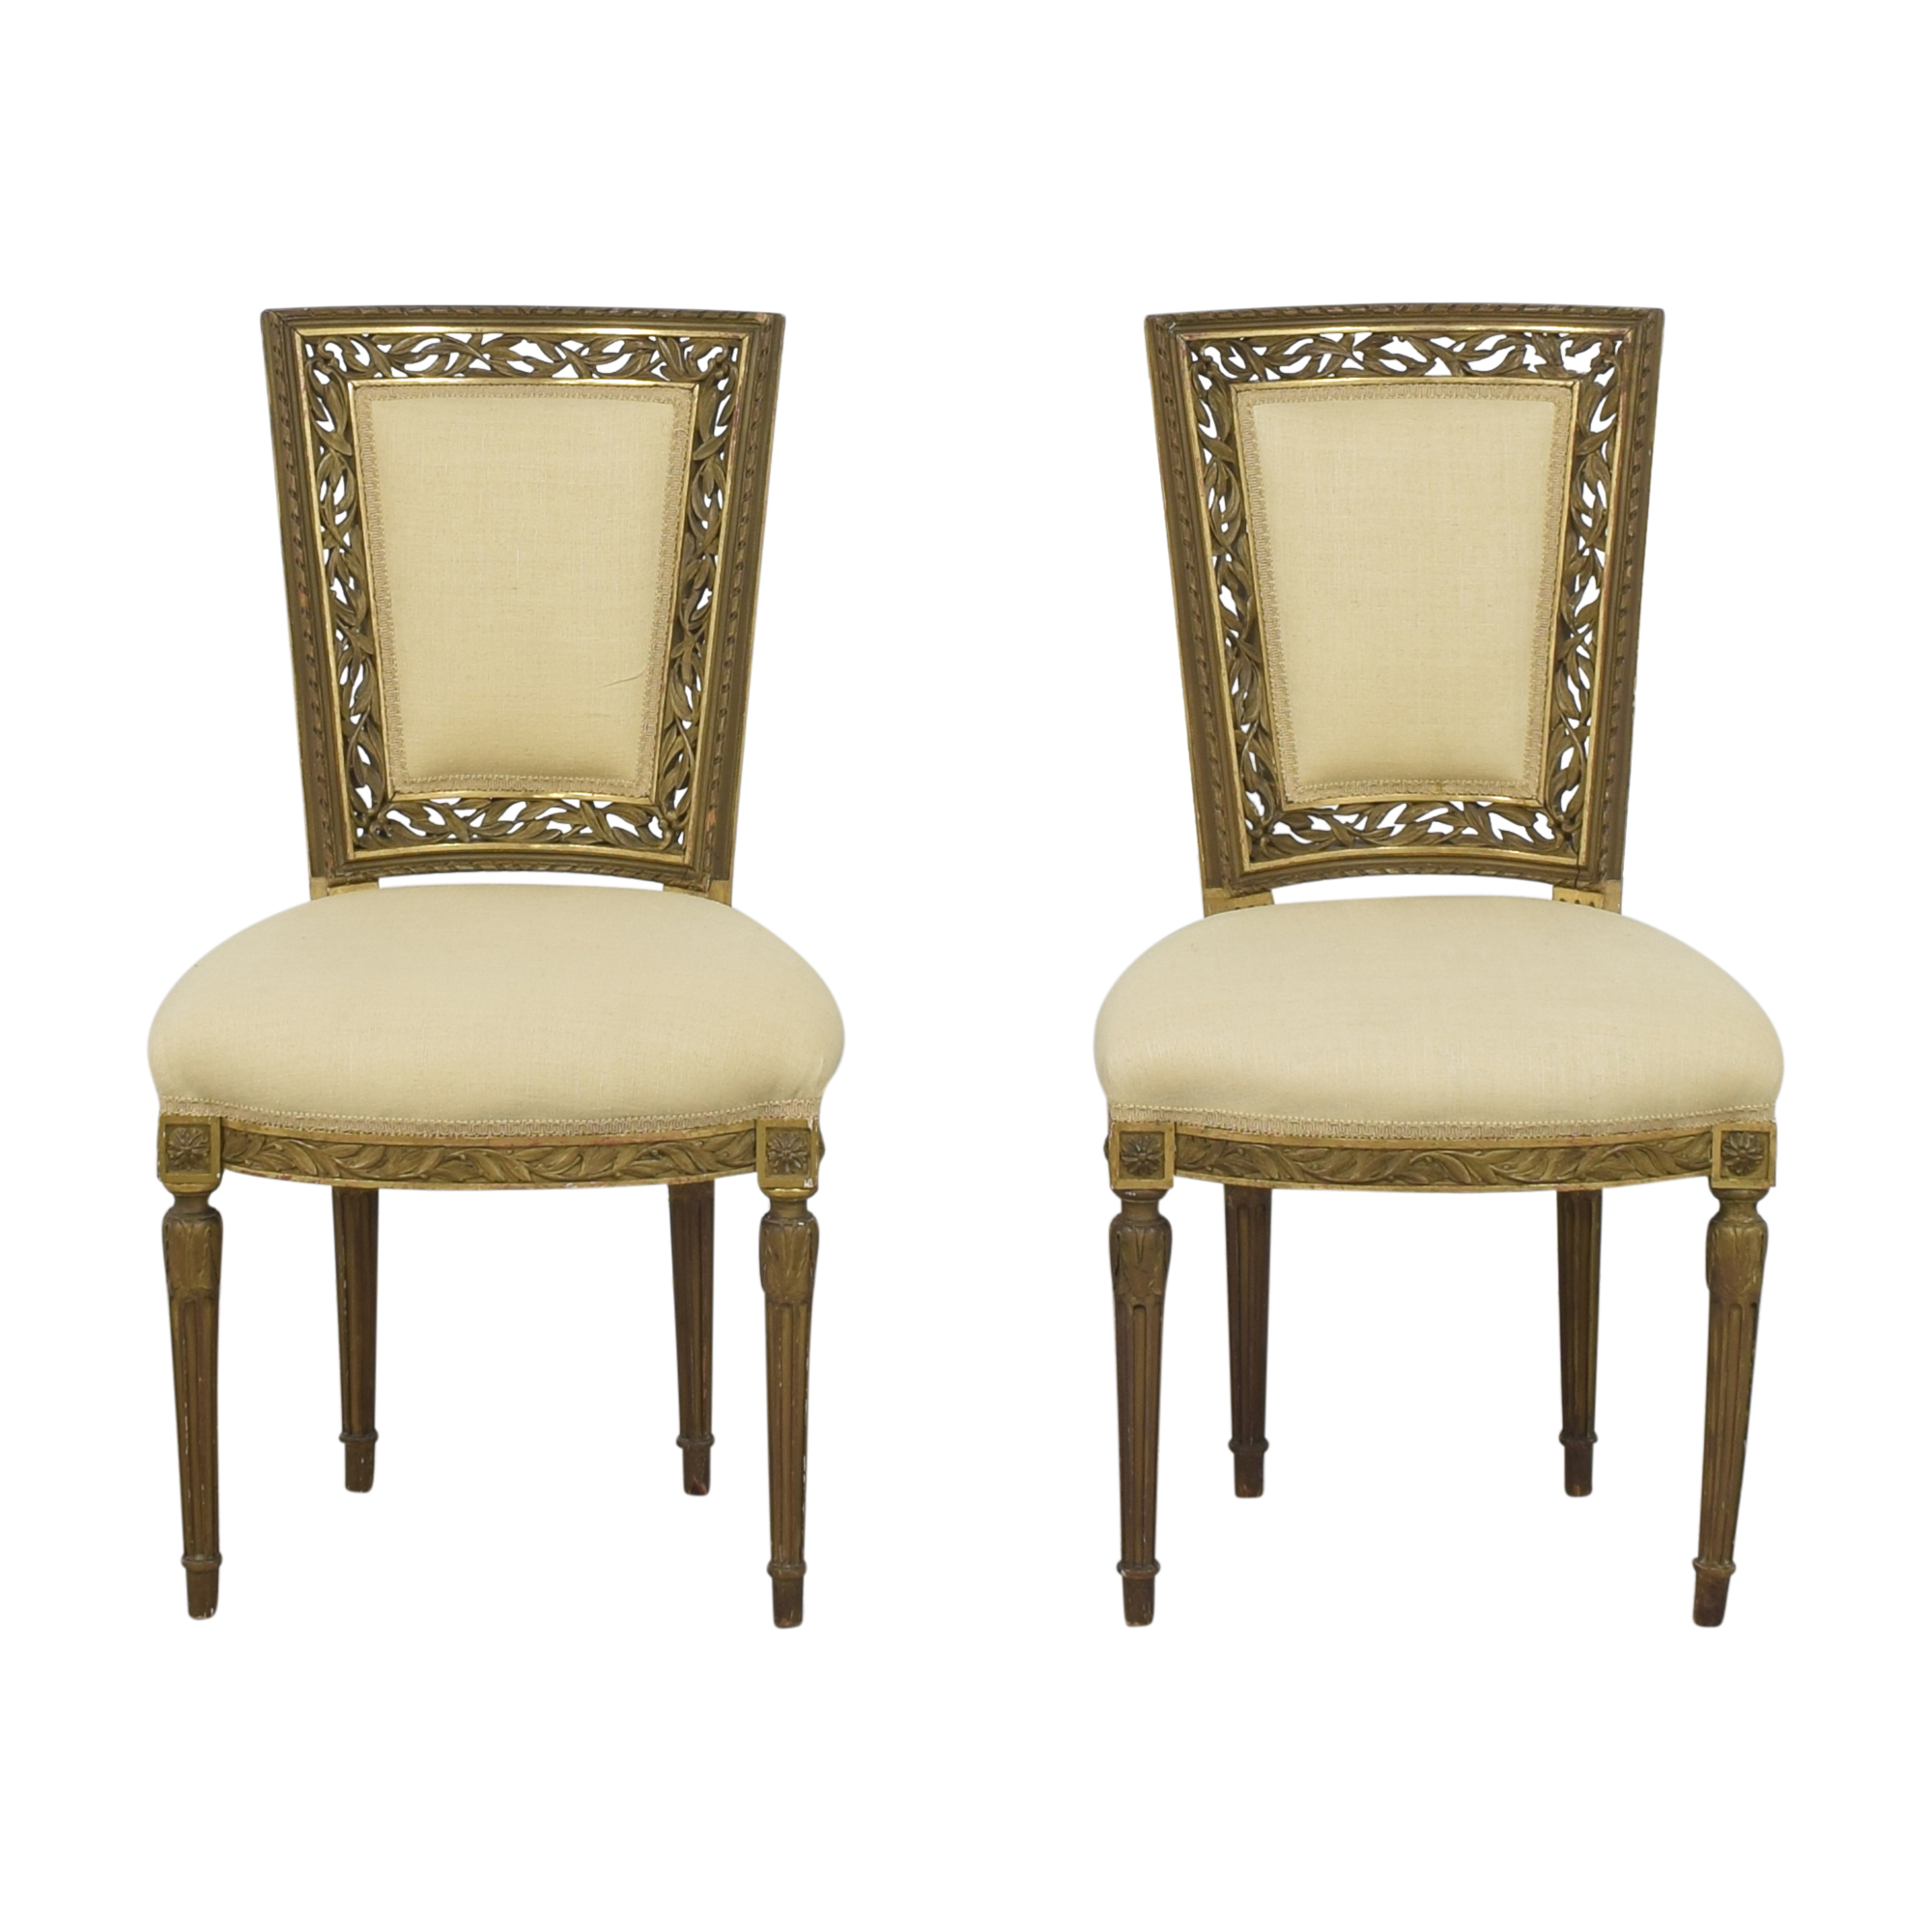 Louis XVI Style Accent Chairs gold and cream